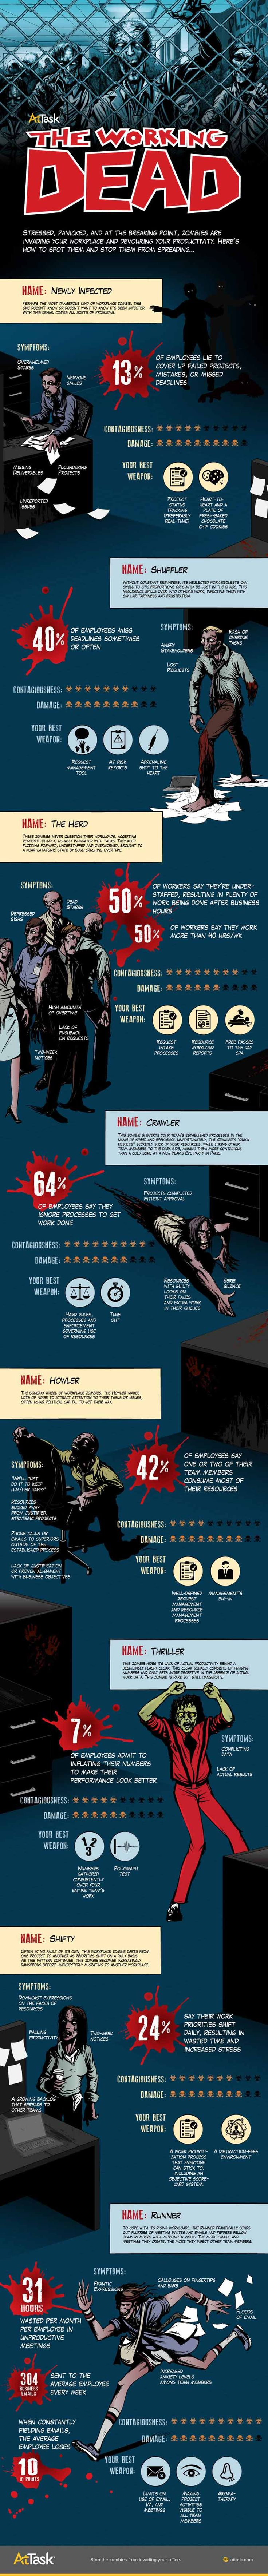 #Infographic: The workplace as a zombie apocalypse